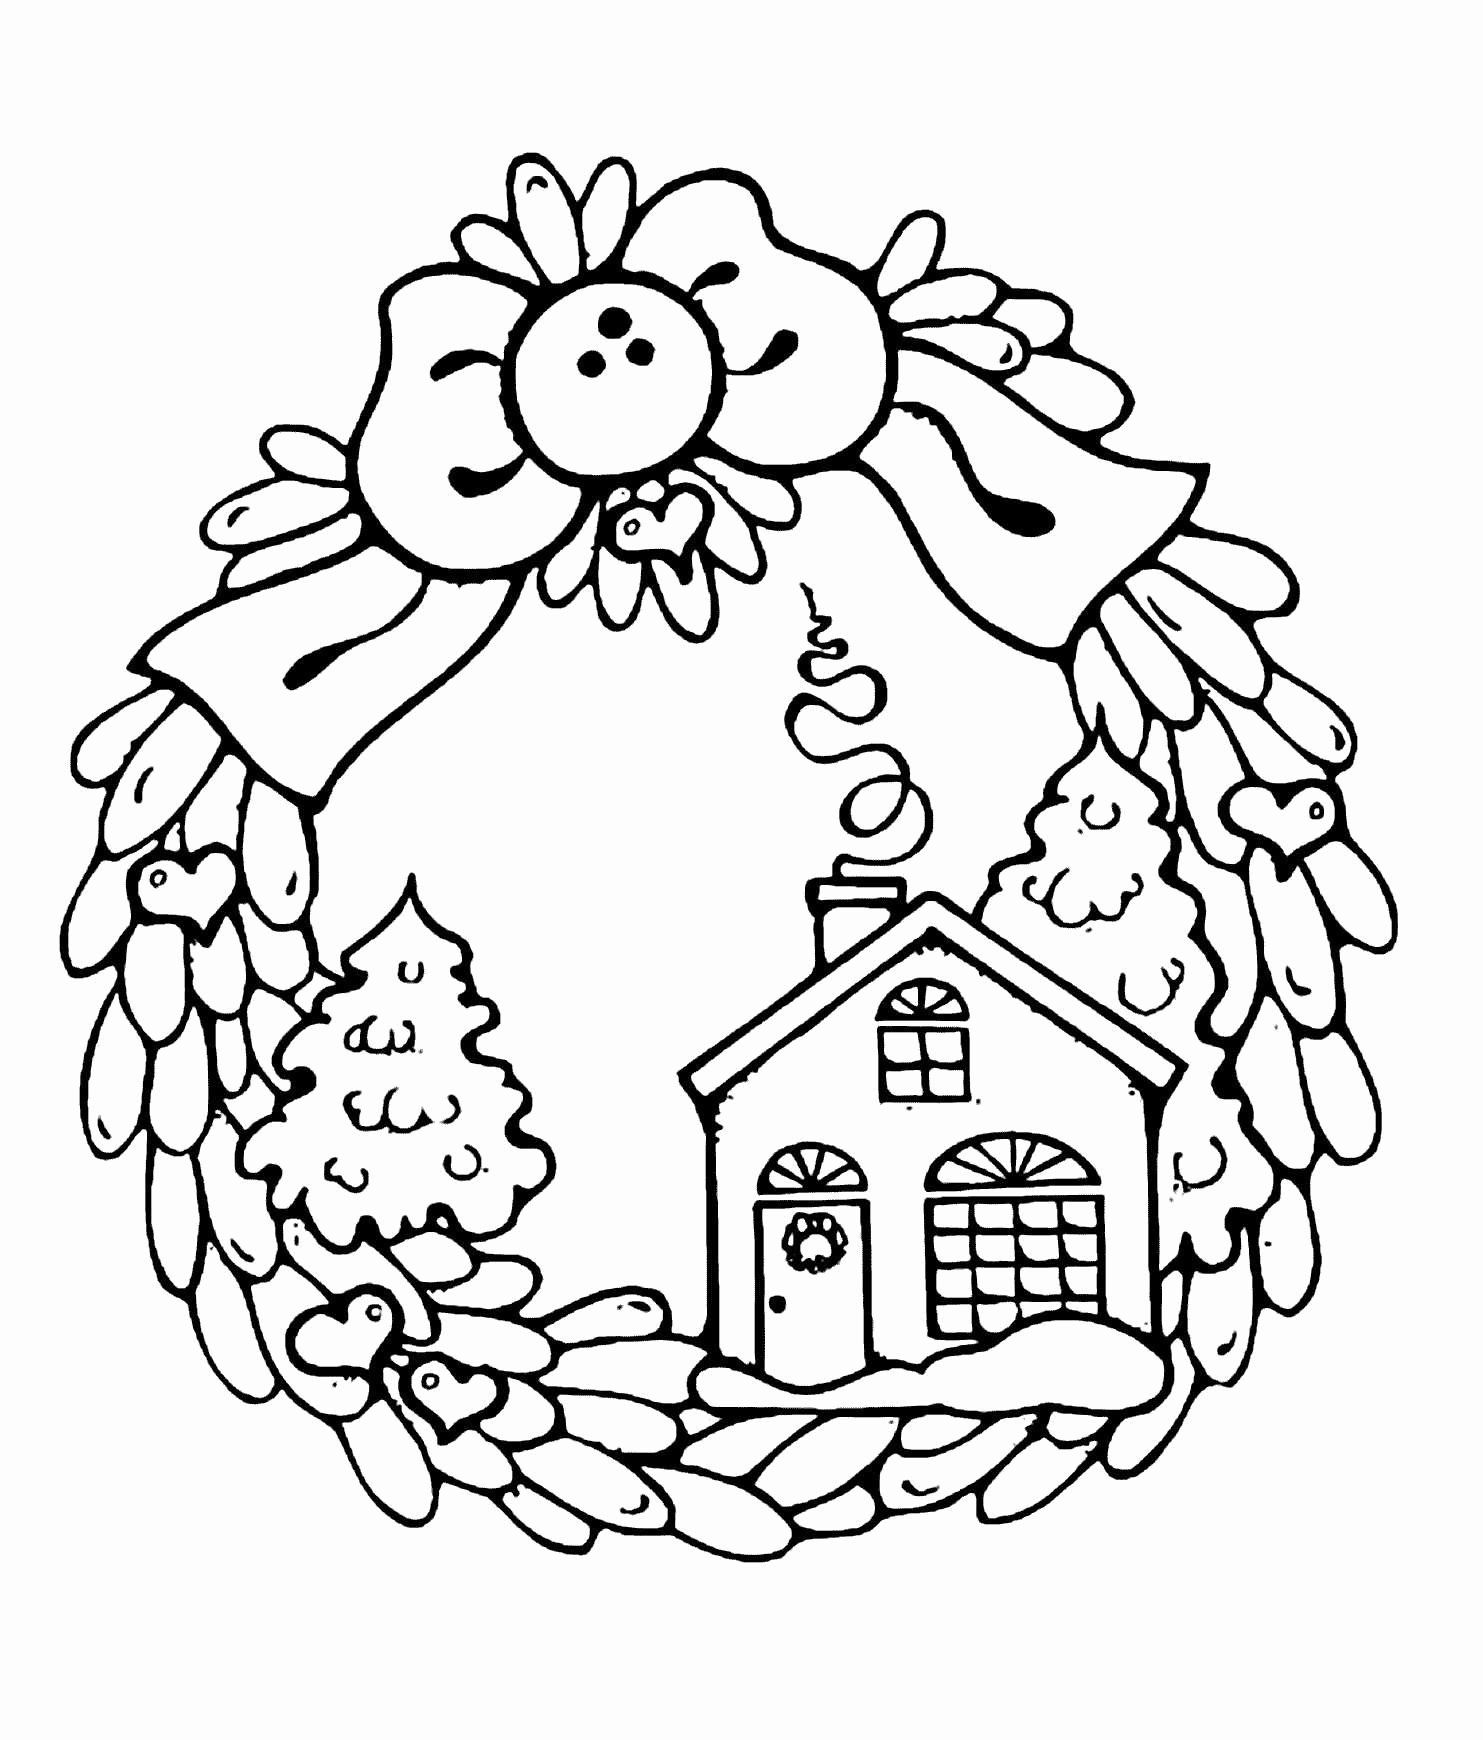 Advent Wreath Coloring Page Catholic Inspirational Christmas Coloring Pages In 2020 Coloring Pages Winter Printable Christmas Coloring Pages Nativity Coloring Pages